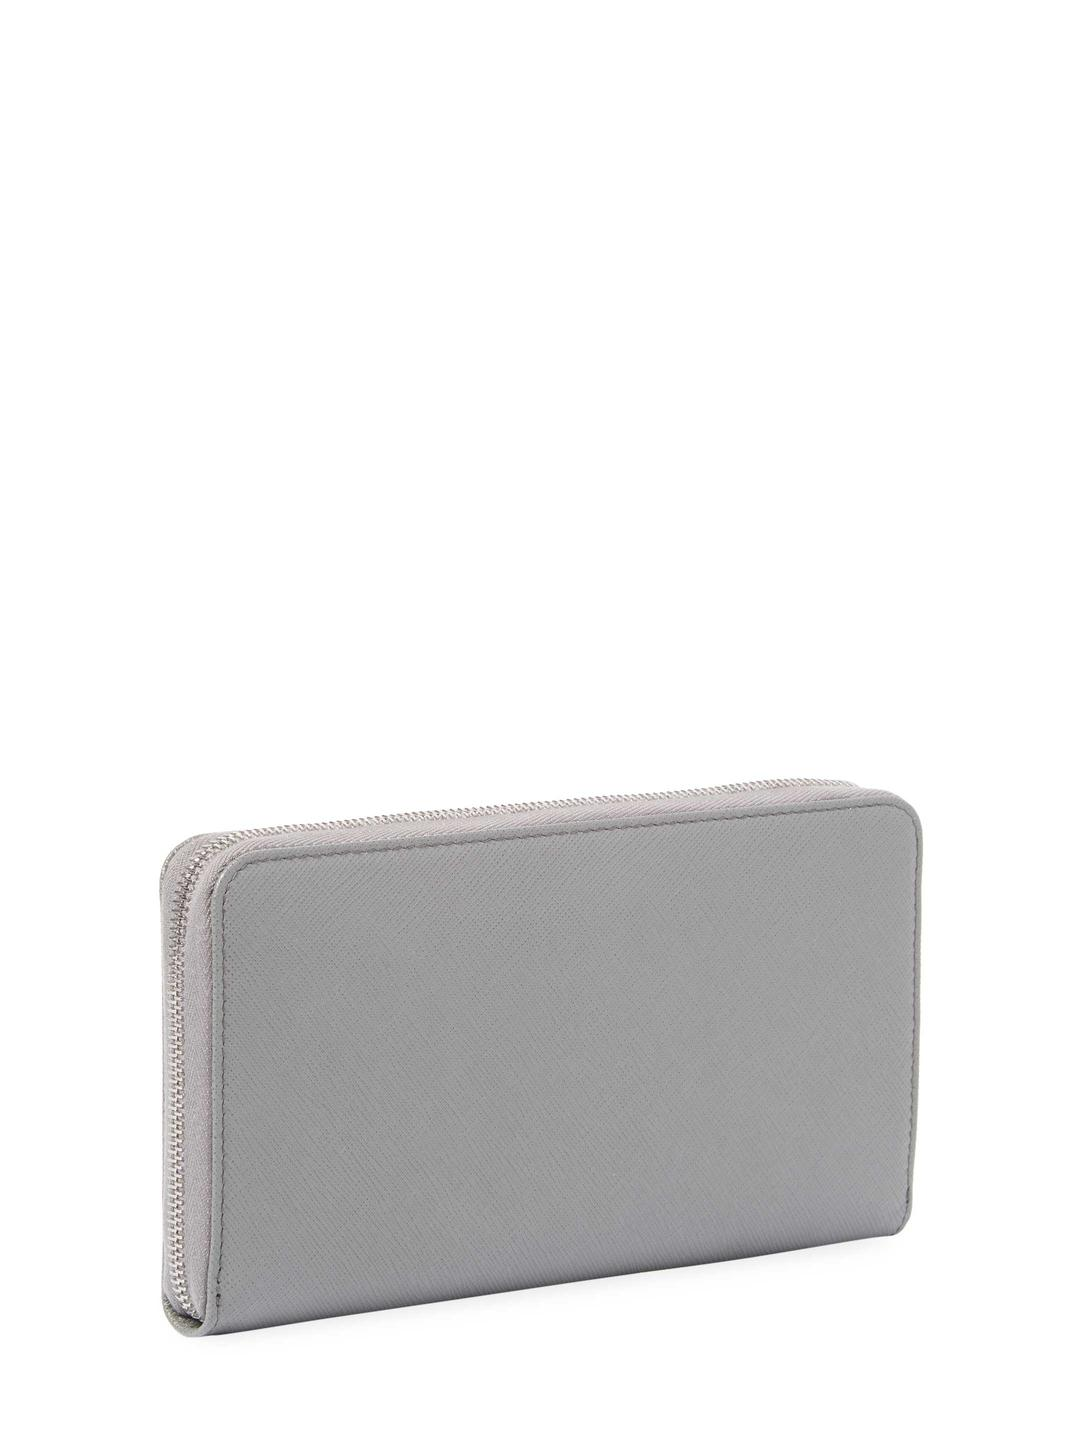 c68367417dcaf5 ... where to buy prada gray saffiano leather zip around wallet lyst. view  fullscreen 2a74b 19a83